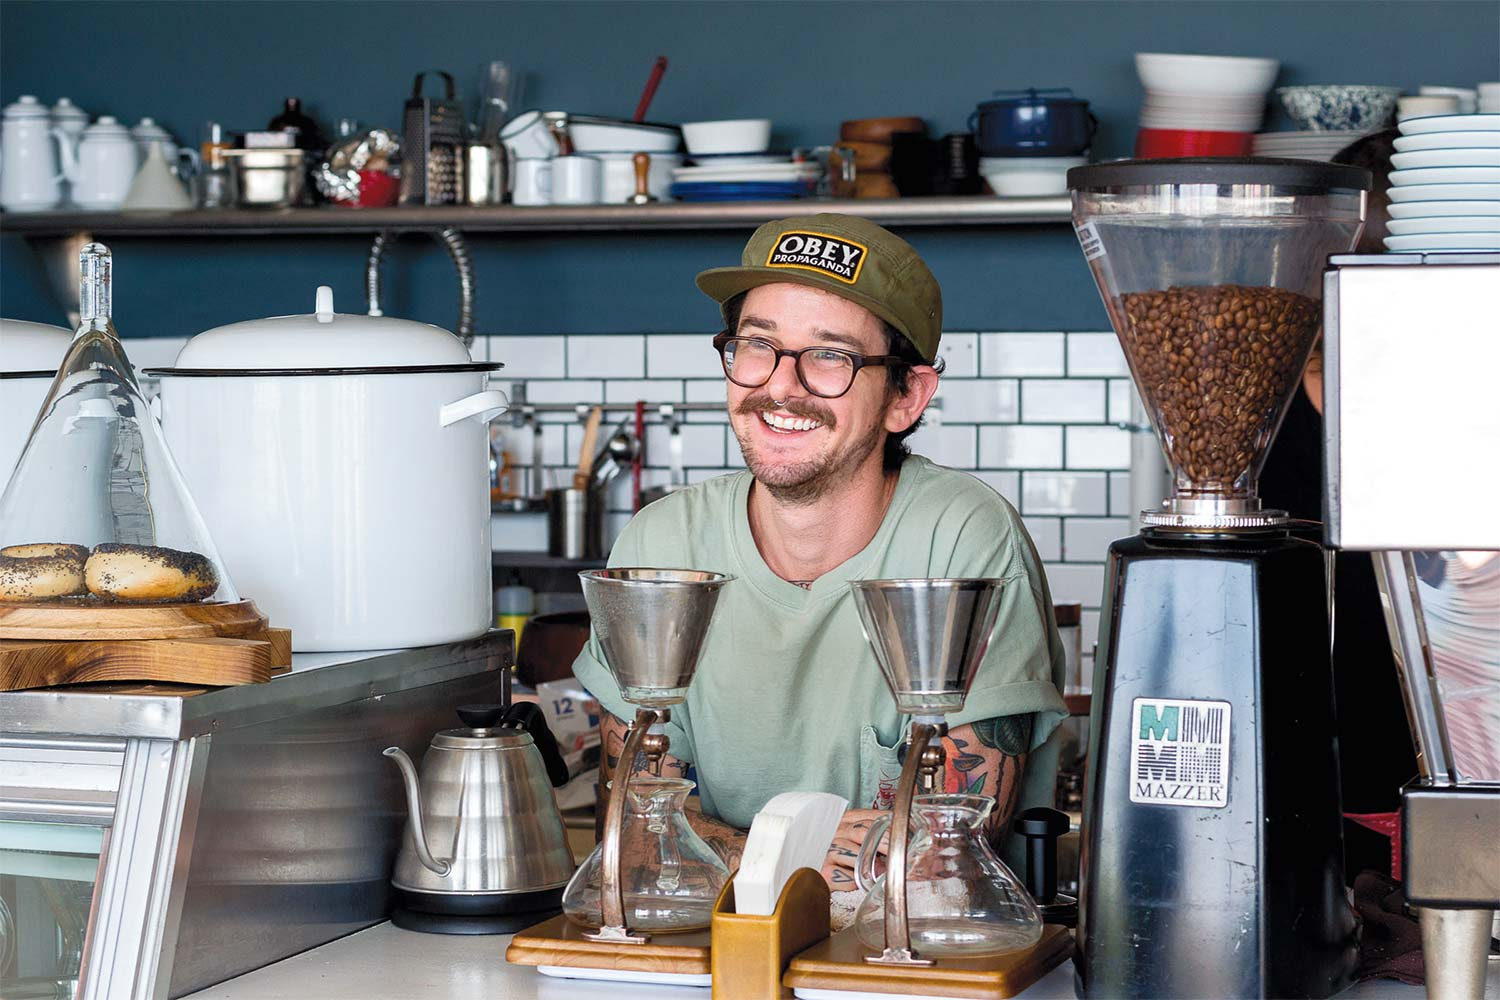 Mike Caliendo links coffee cocktails and mixology